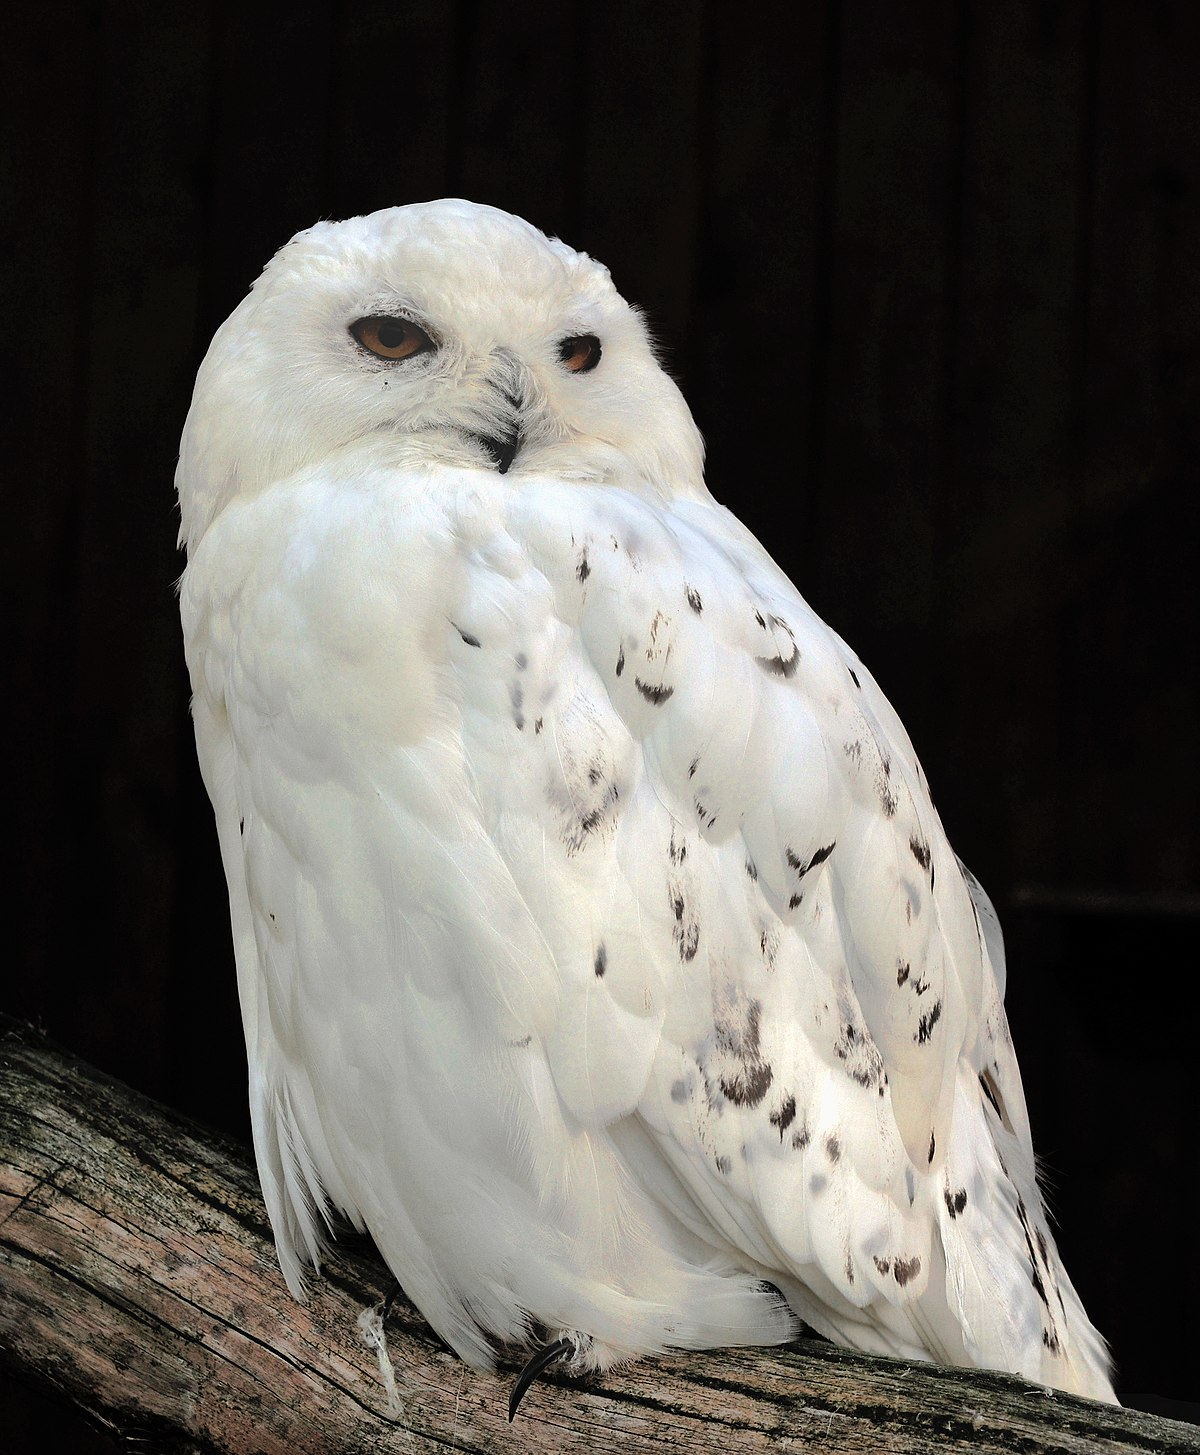 Snowy Owl  Wikipedia. Surplus Kitchen Cabinets. Kitchen Cabinets Doors Replacement. Painted Grey Kitchen Cabinets. Rta Kitchen Cabinets Canada. Cabinet Lights Kitchen. Choosing Kitchen Cabinets. Kitchen Cabinets Vancouver Wa. Arts And Crafts Style Kitchen Cabinets